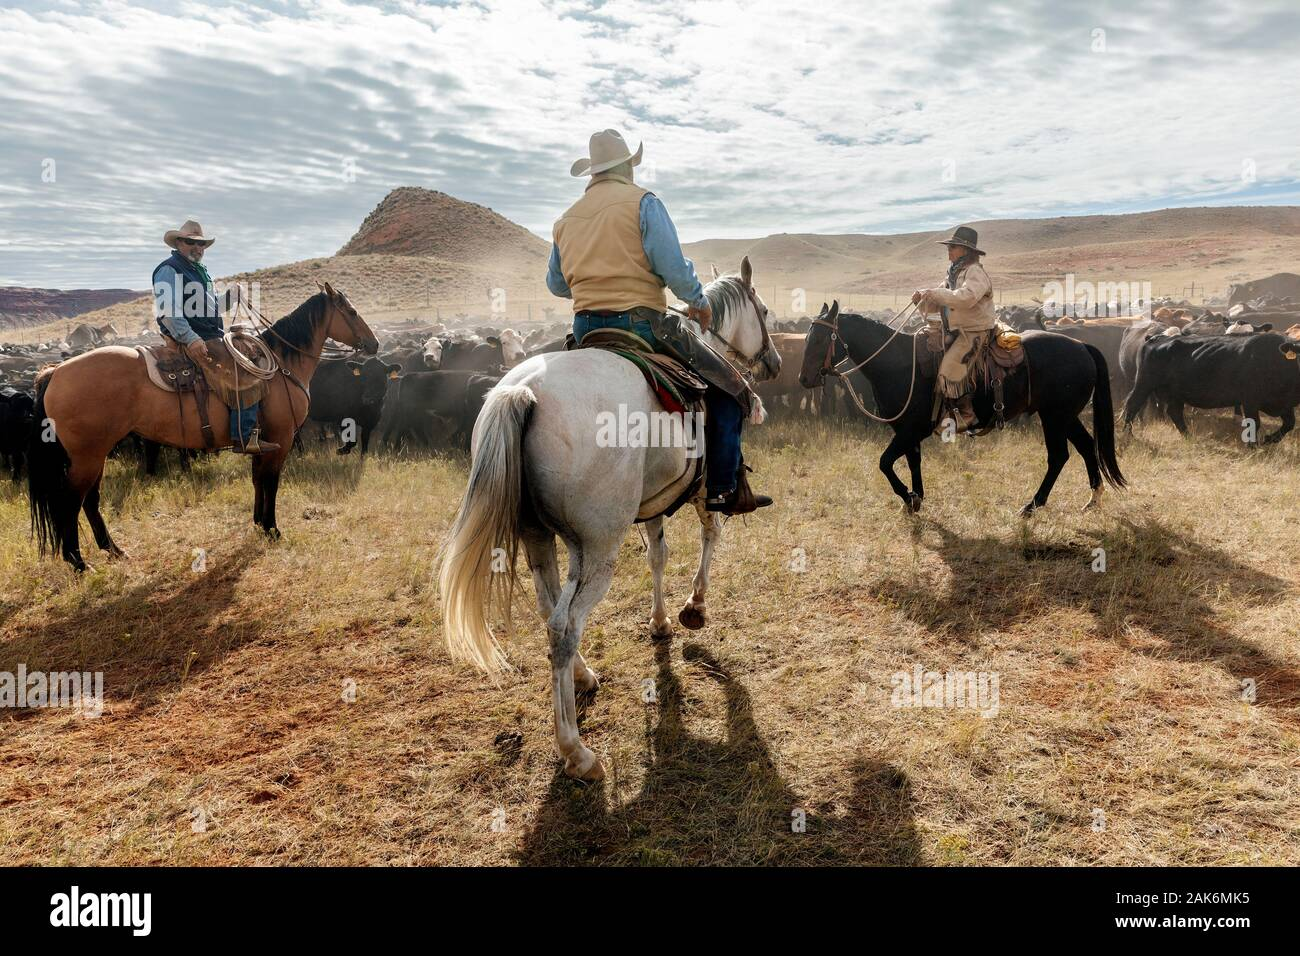 WY04135-00...WYOMING - Cowboys and Cowgirl at a cattle round  up on the Willow Creek Ranch. Stock Photo